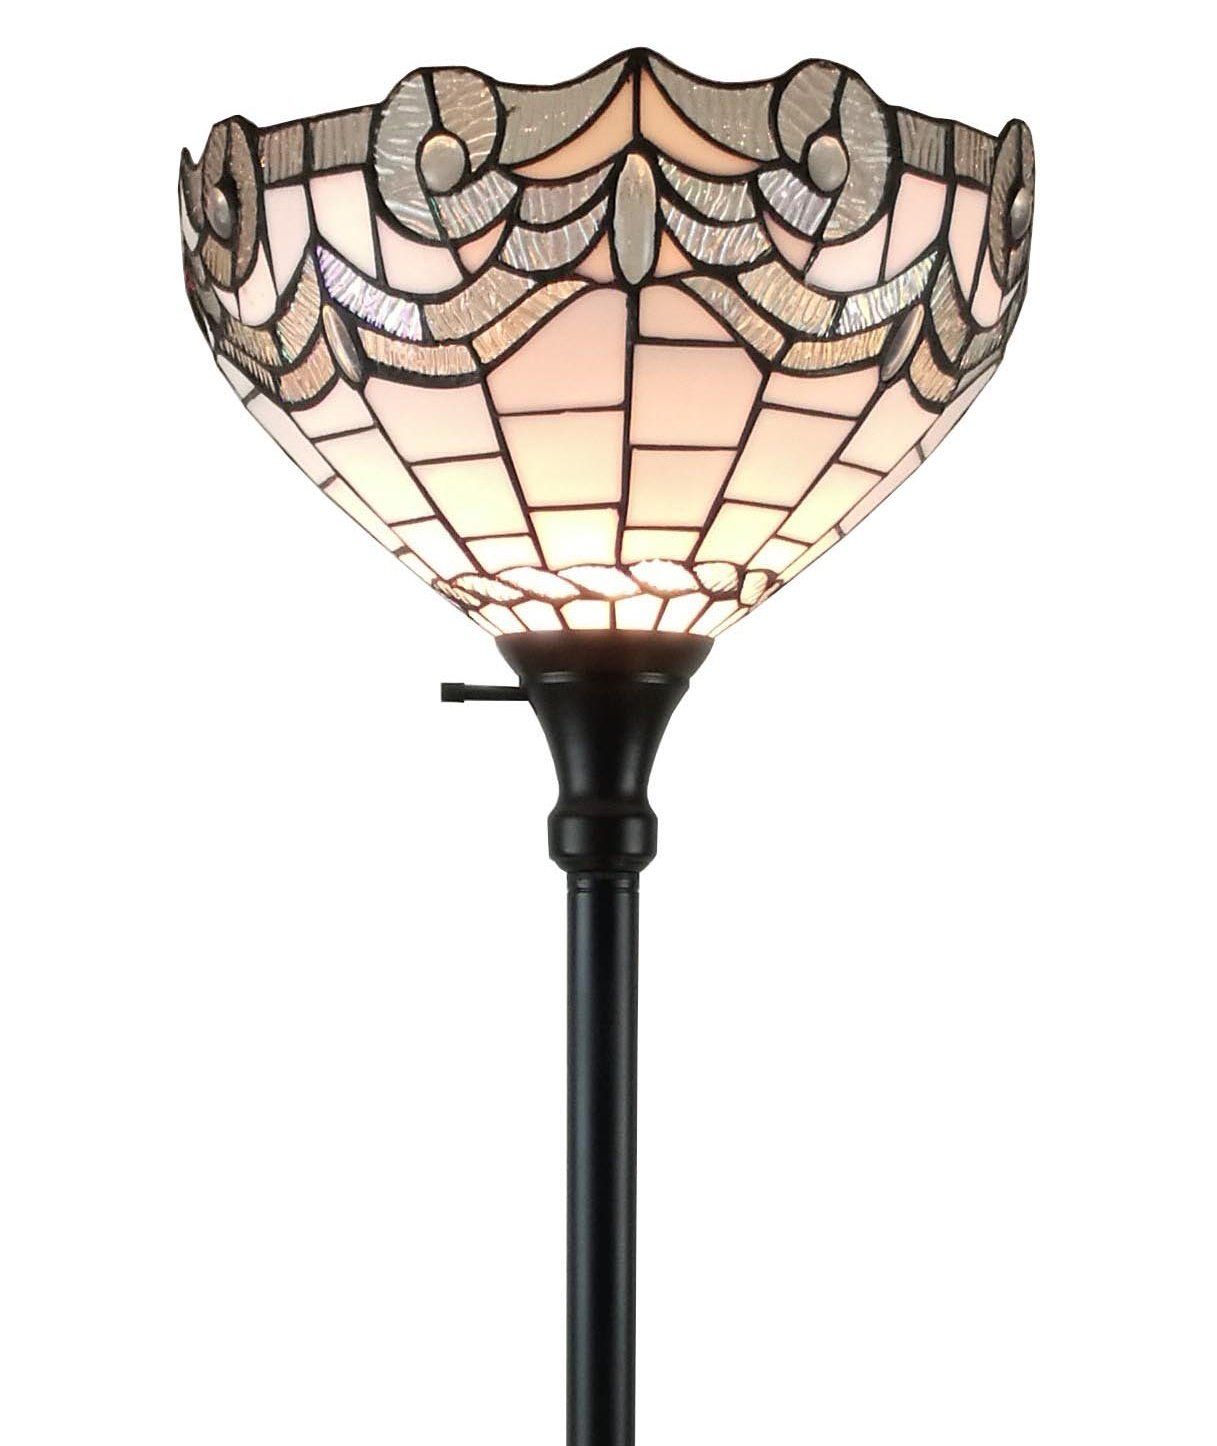 Amora Lighting AM265FL14 White Tiffany-style Torchiere Floor Lamp, 72 Inches Tall